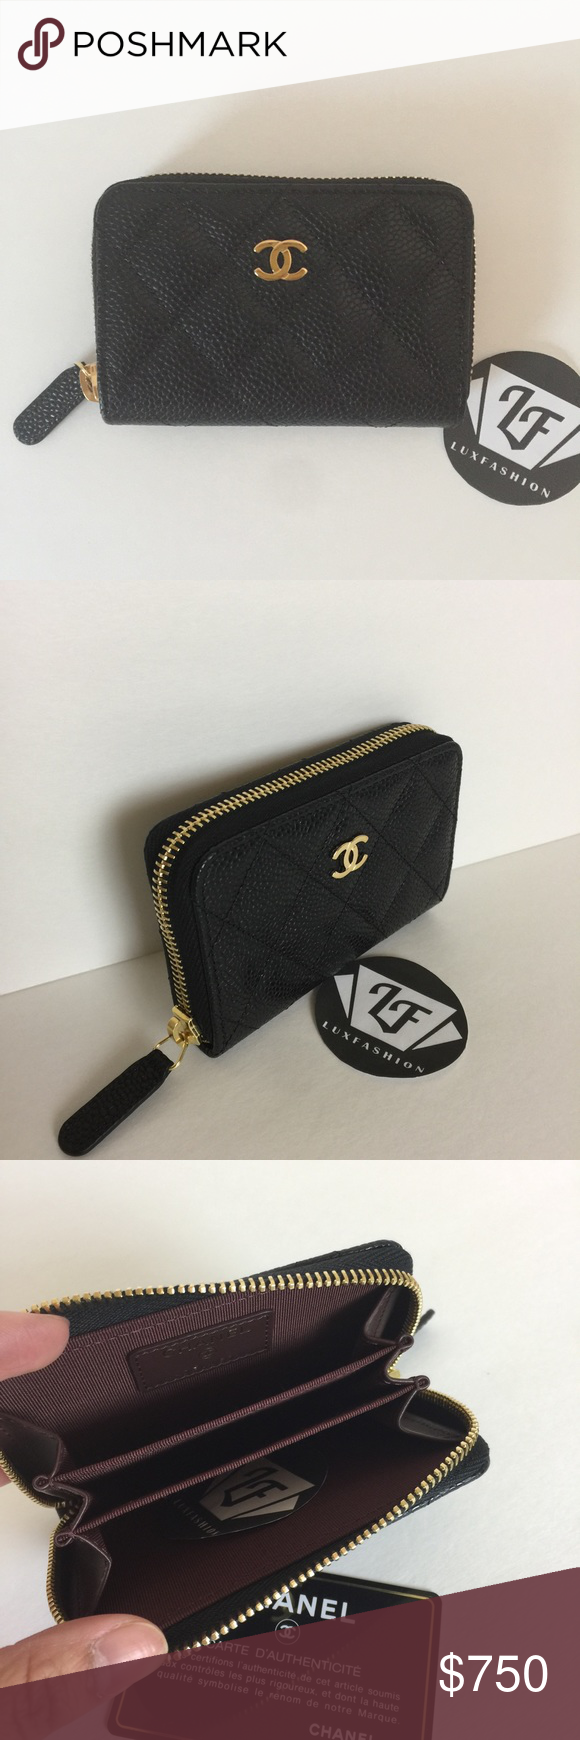 db4da94c52bf Authentic Chanel Classic Card Holder O Coin Purse Brand New Chanel Zip  Around Small Wallet